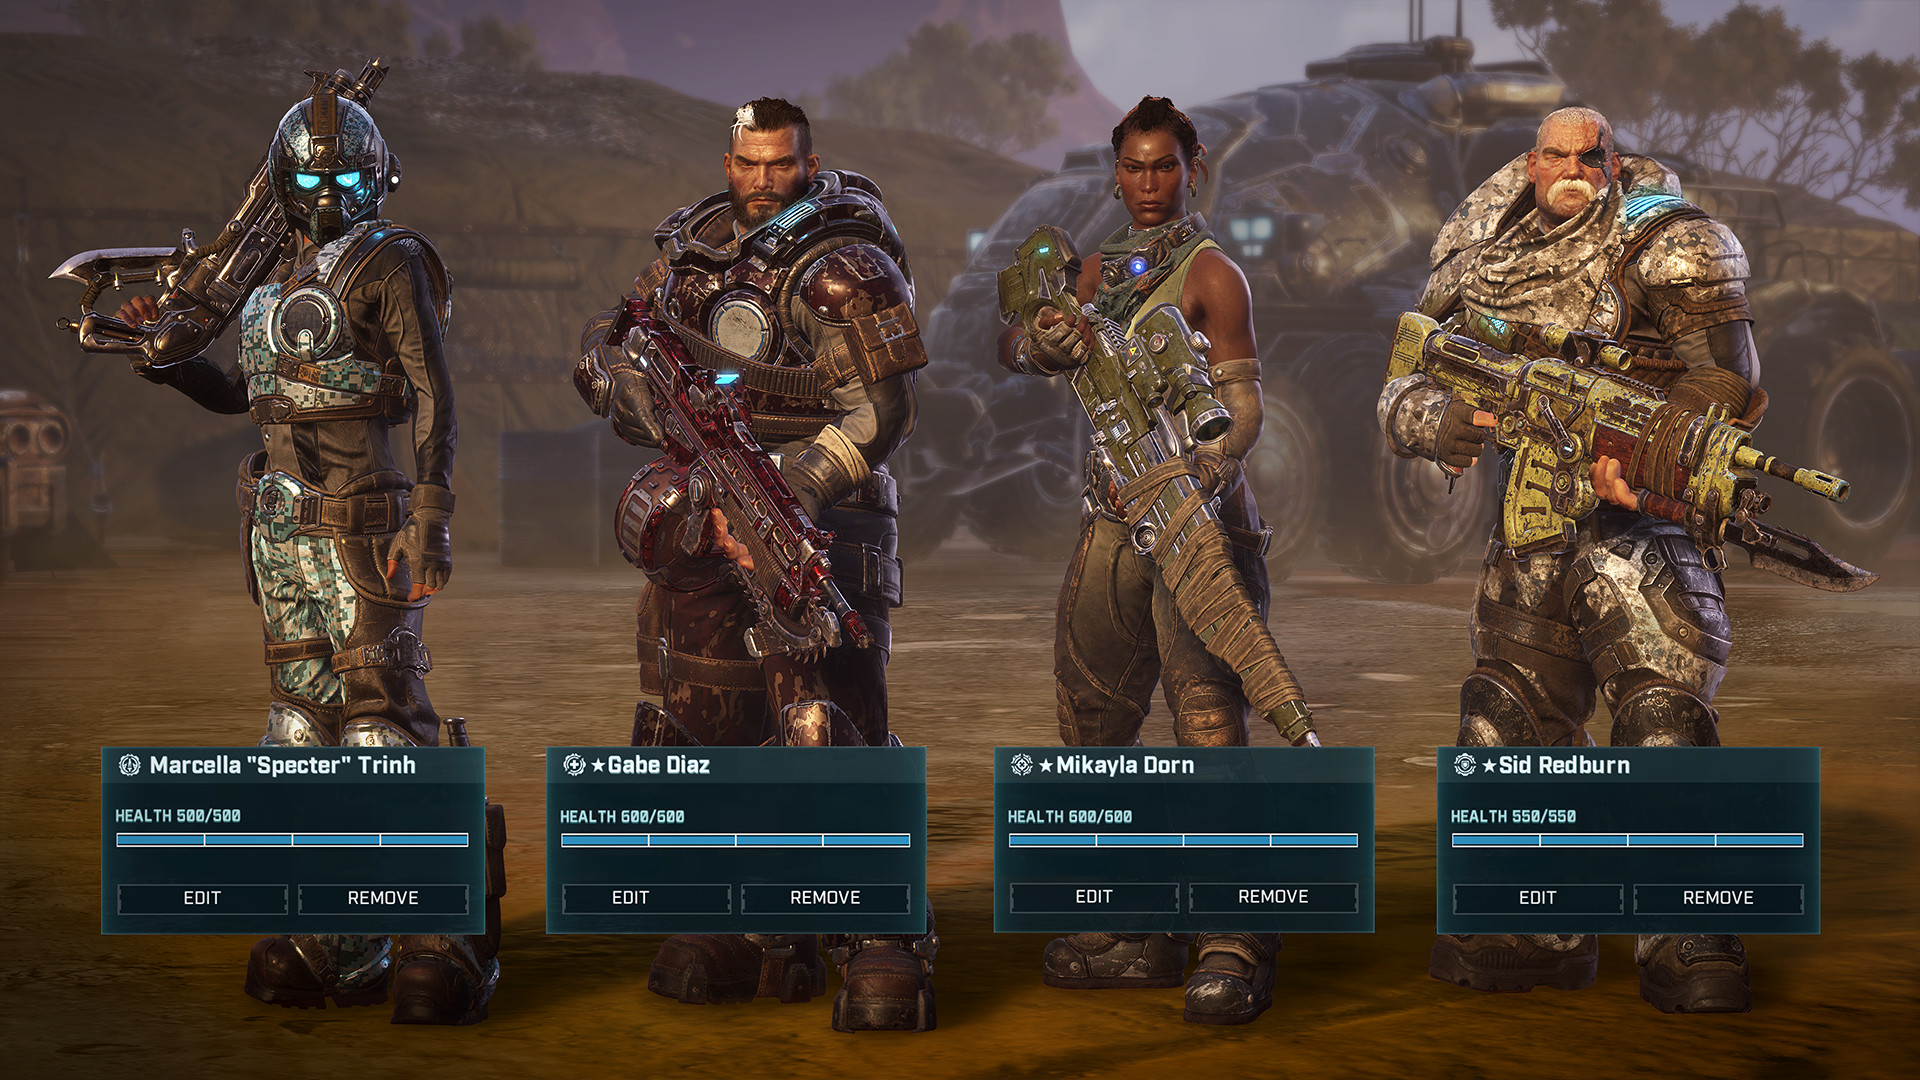 Pre-purchase Gears Tactics on Steam